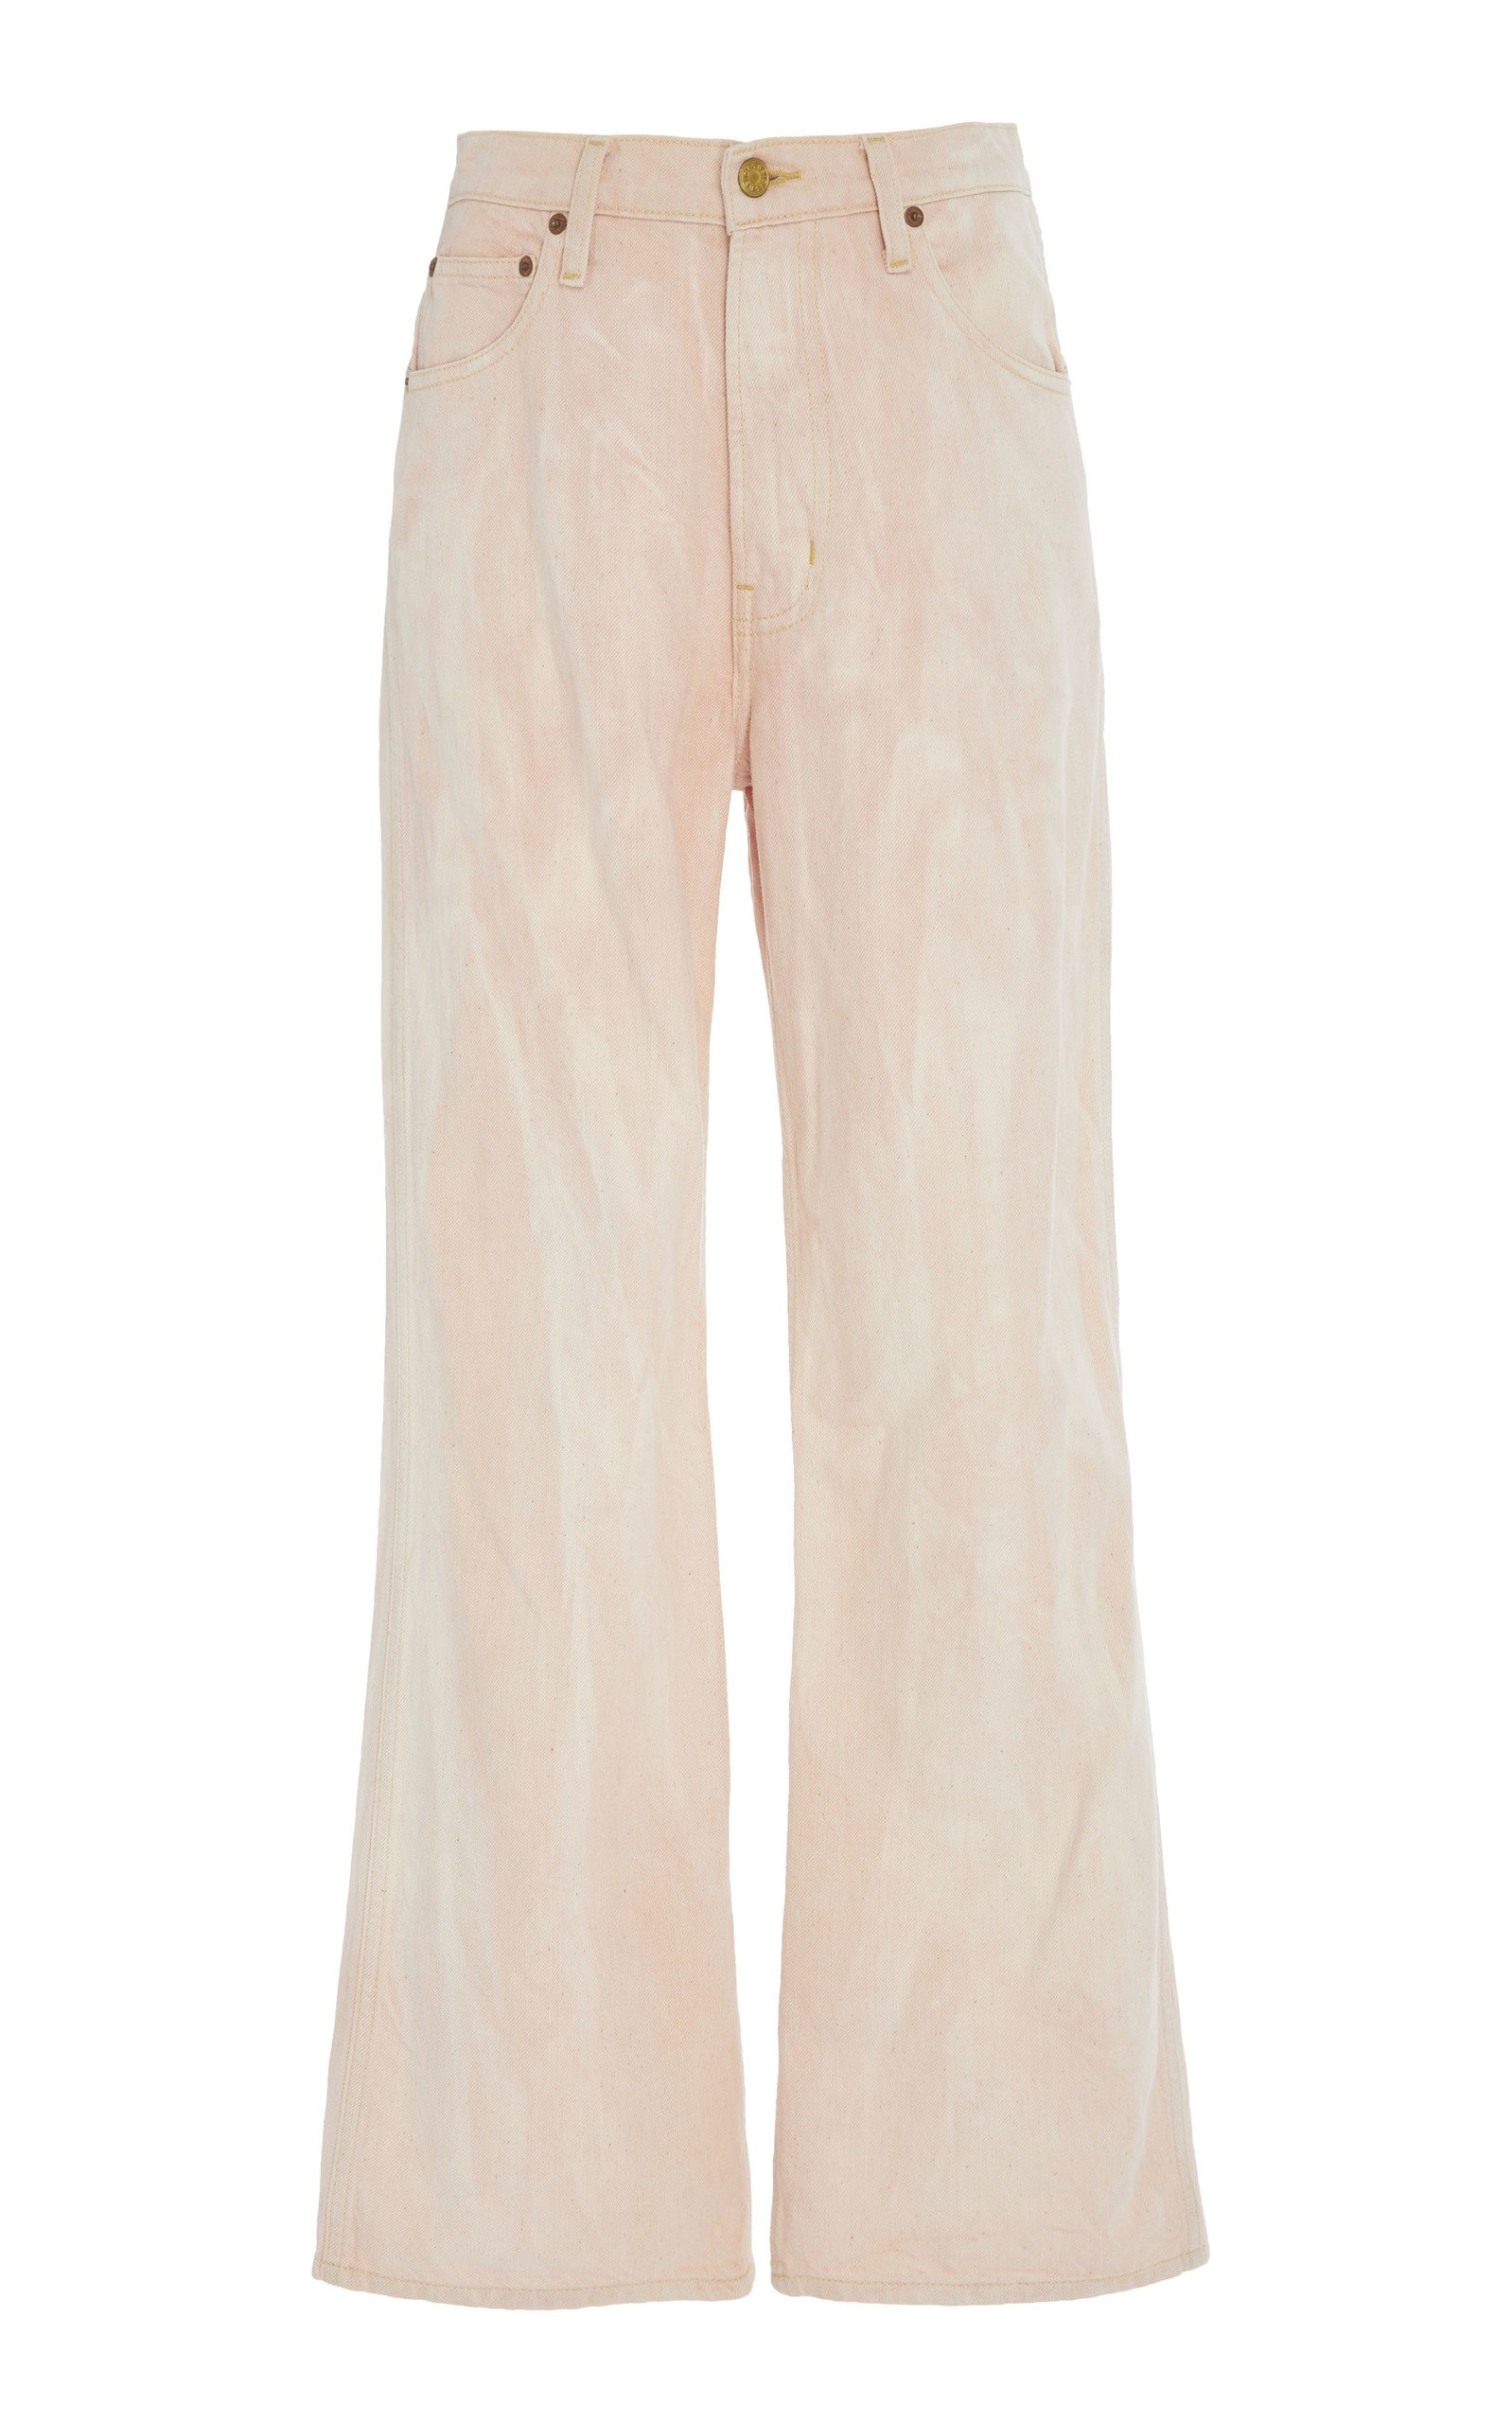 B SIDES Plein High-Rise Straight-Leg Watercolor Jeans in Pink